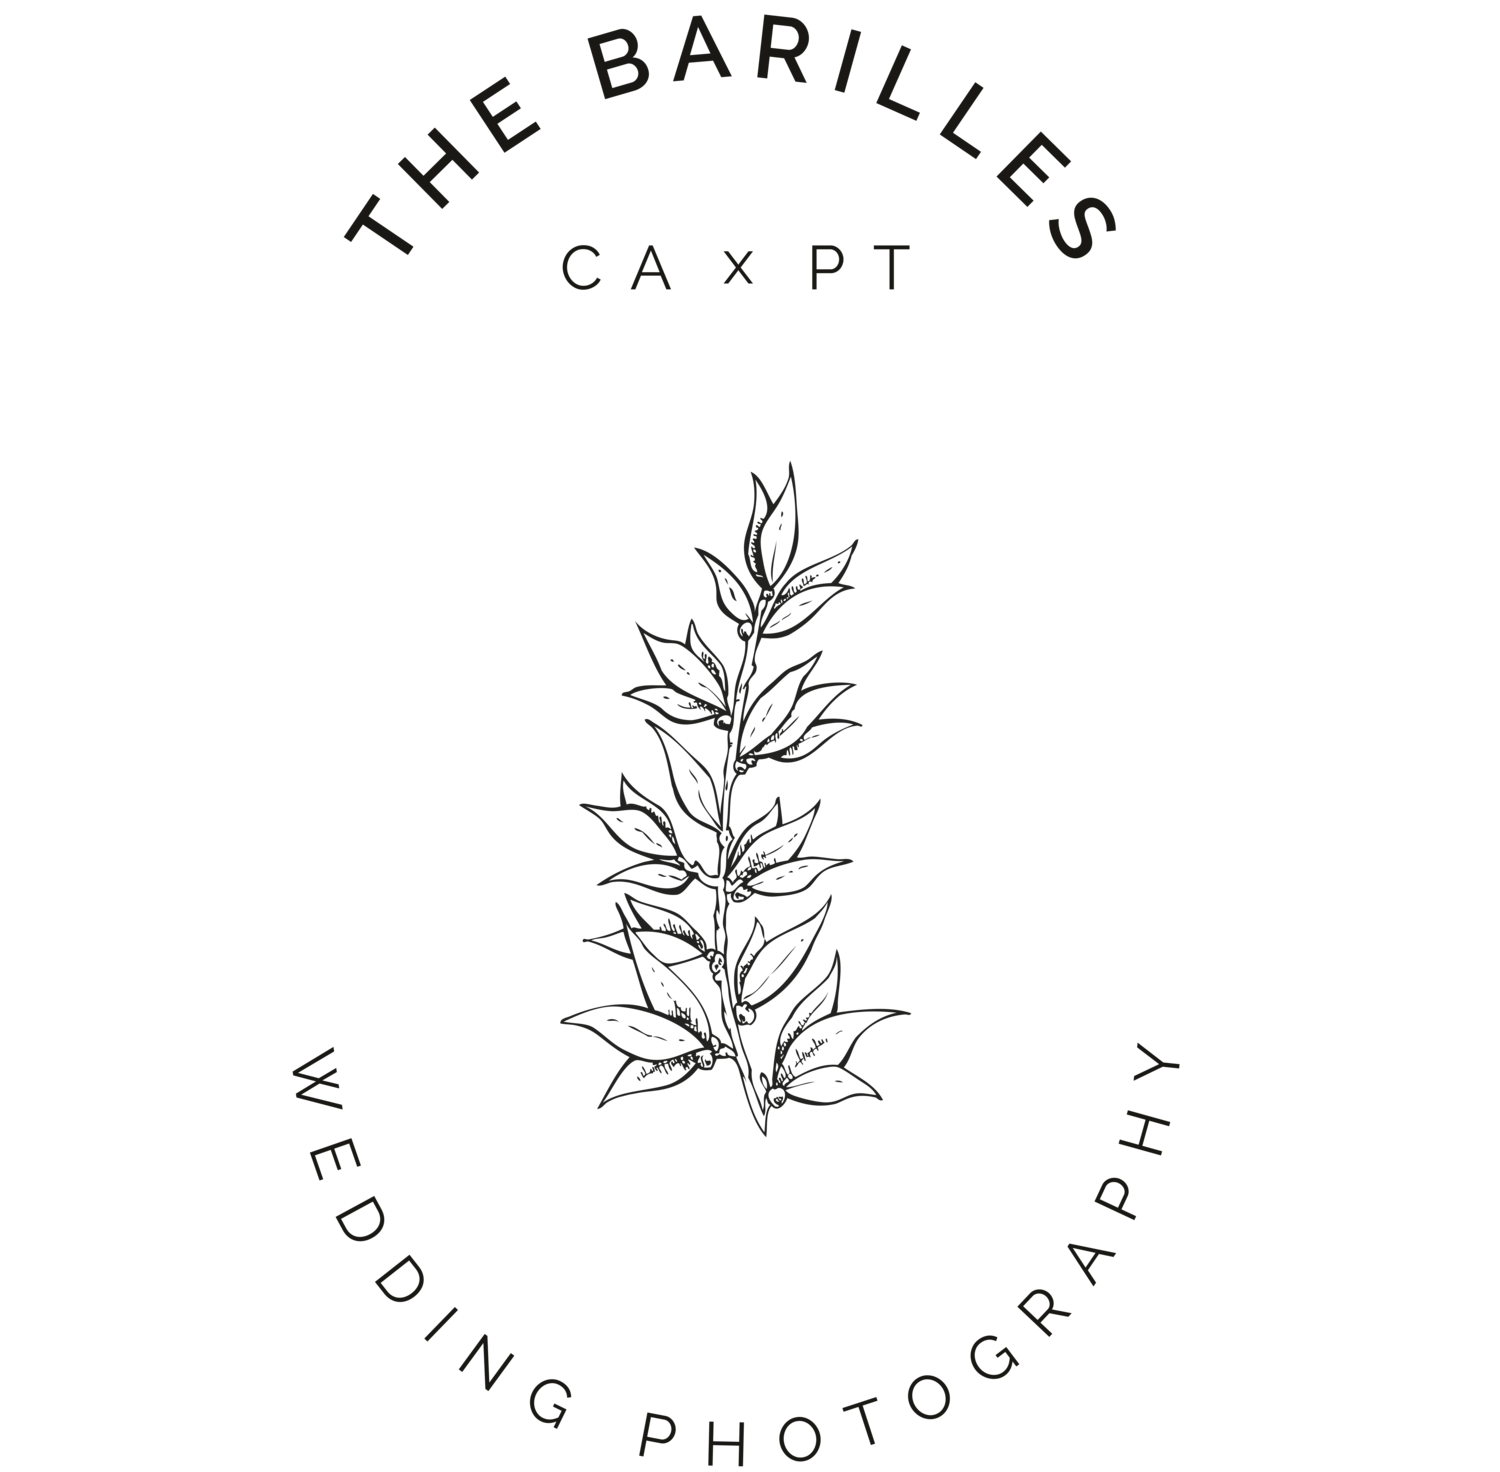 The Barille's